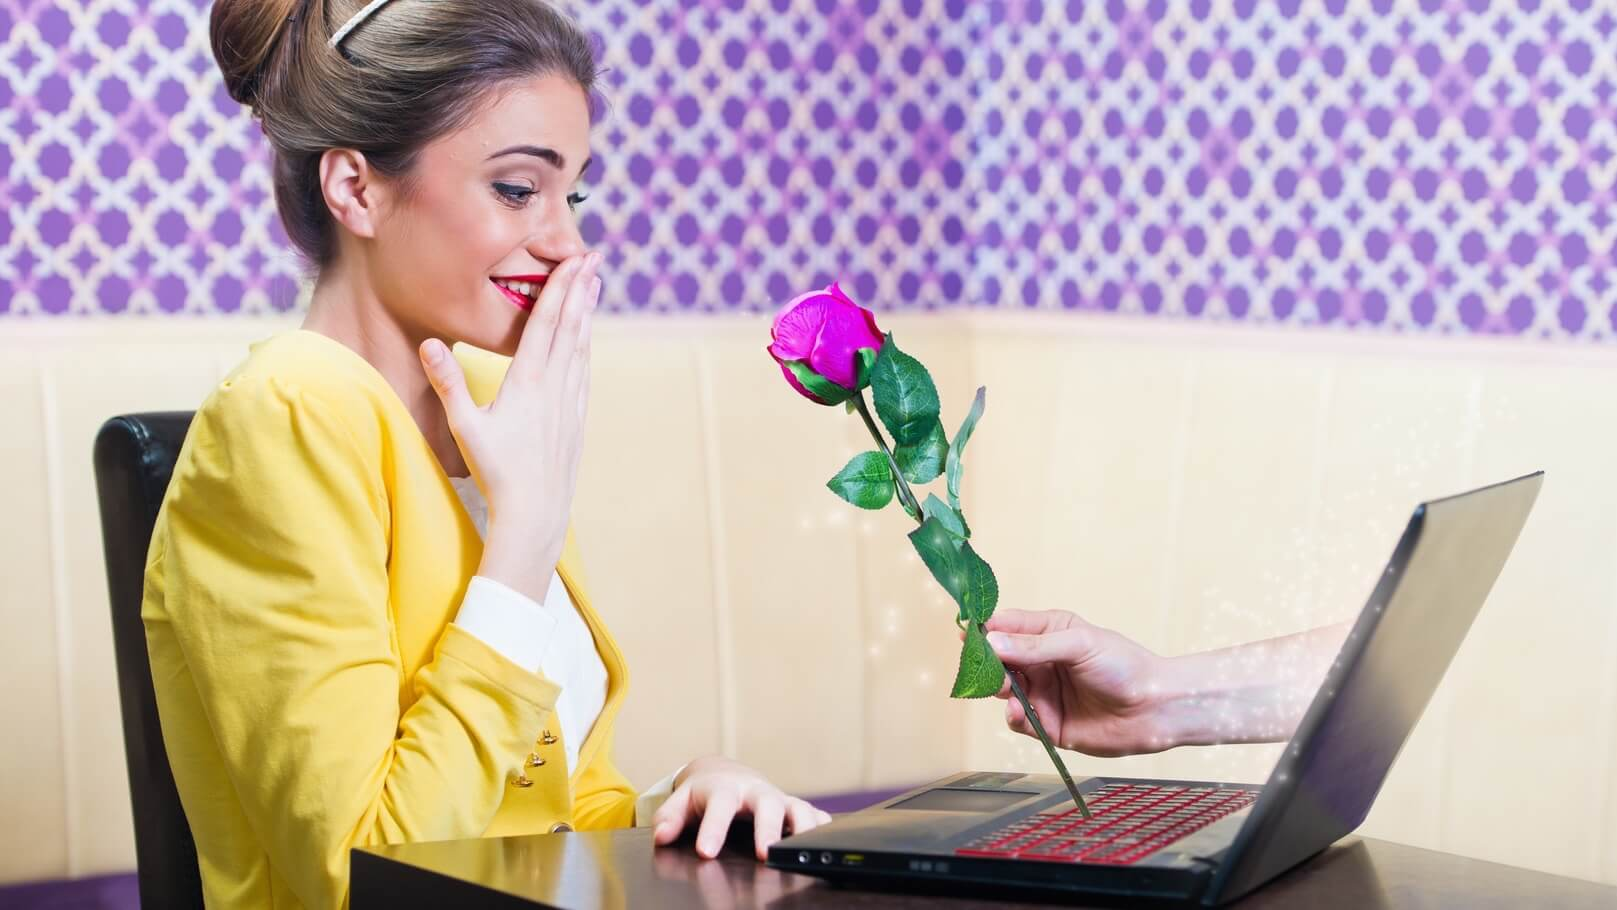 five points online dating Online dating, once a fringe and stigmatized activity, is now a $2 billion industry but is this a positive development or something to be concerned about.